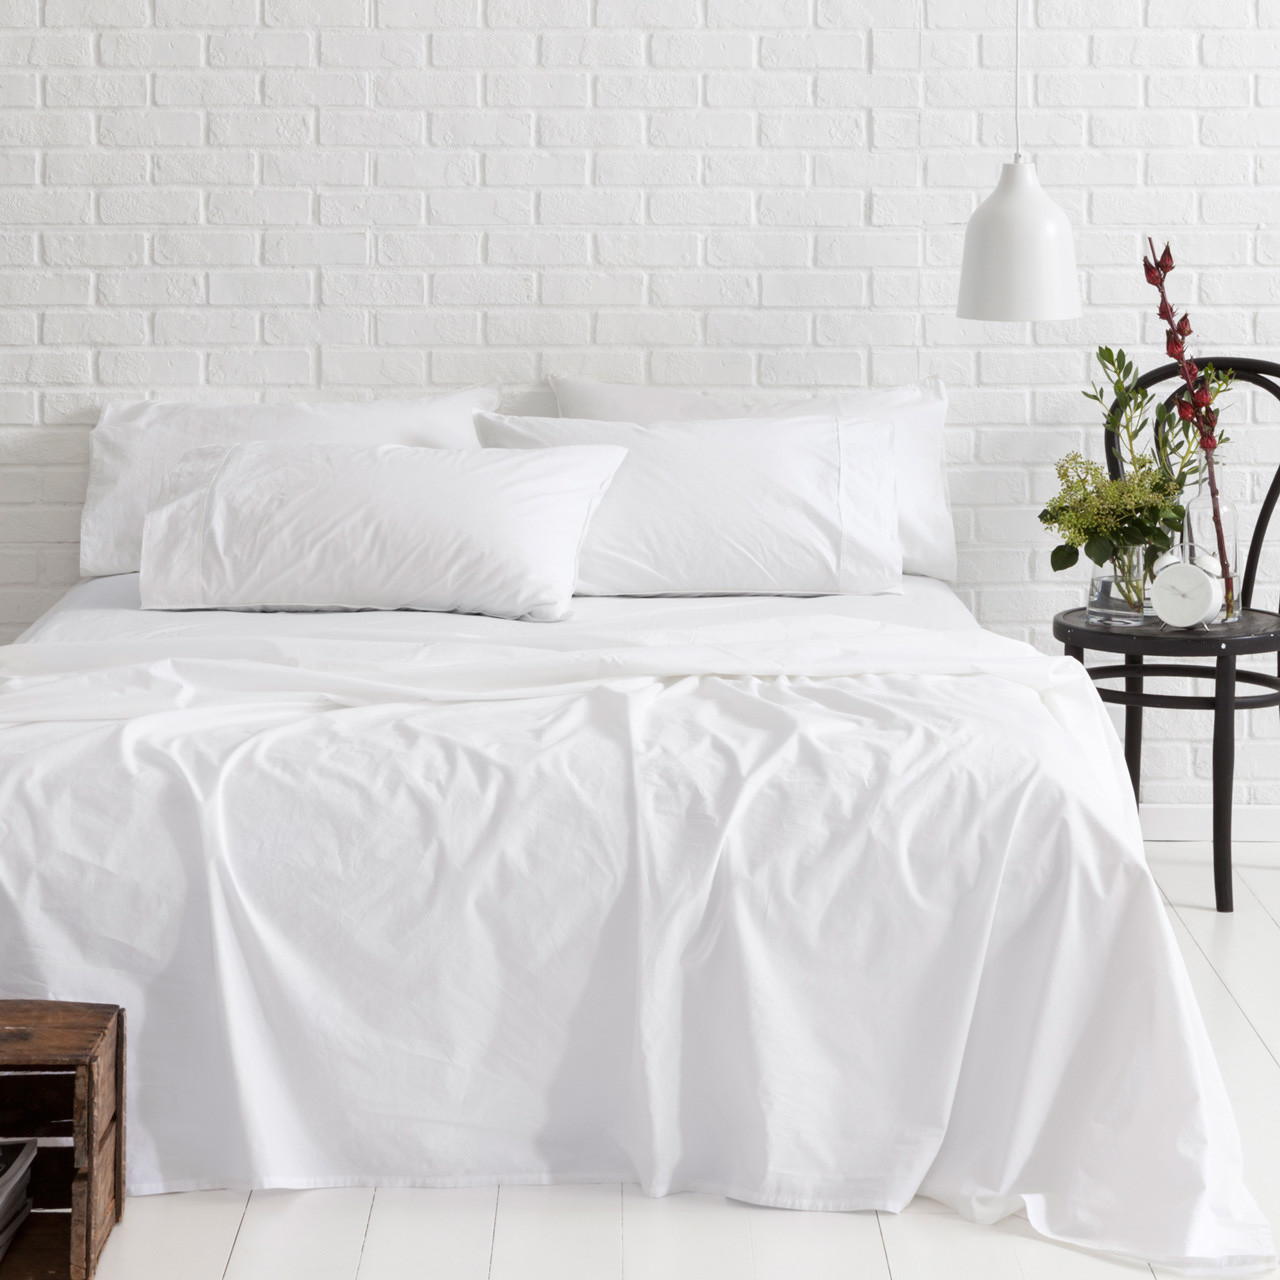 Awesome SKU #CANN1057 White Vintage Softwash Cotton Sheet Set Is Also Sometimes  Listed Under The Following Manufacturer Numbers: VINT1SS008CVCV,  VINT2SS008CVCV, ...